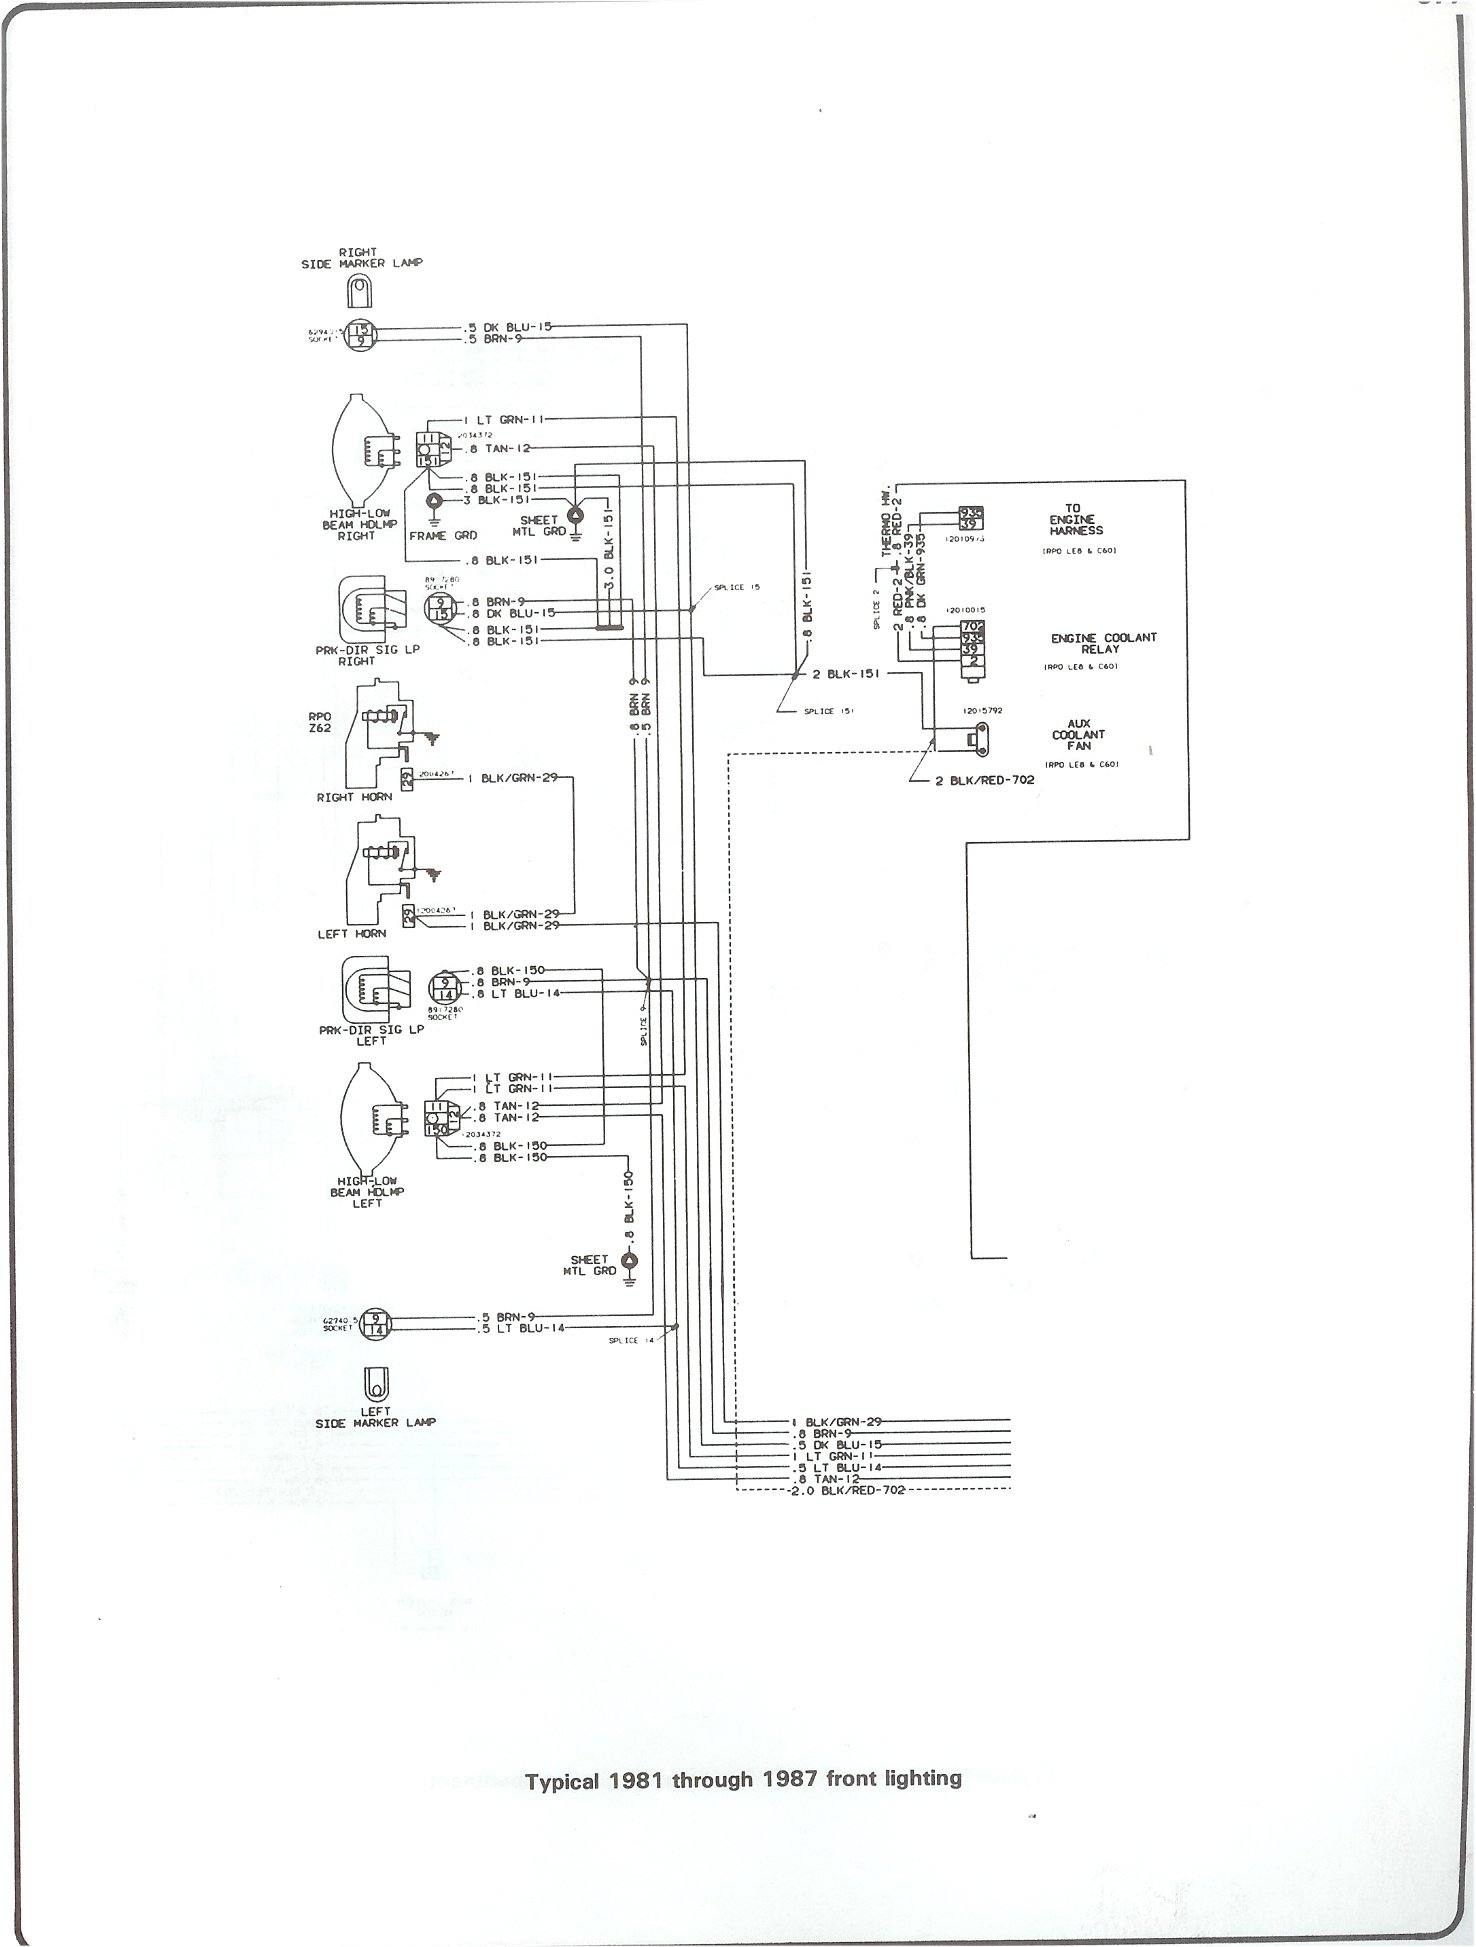 1980 c20 diesel, looking for wiper and pump diagram, or